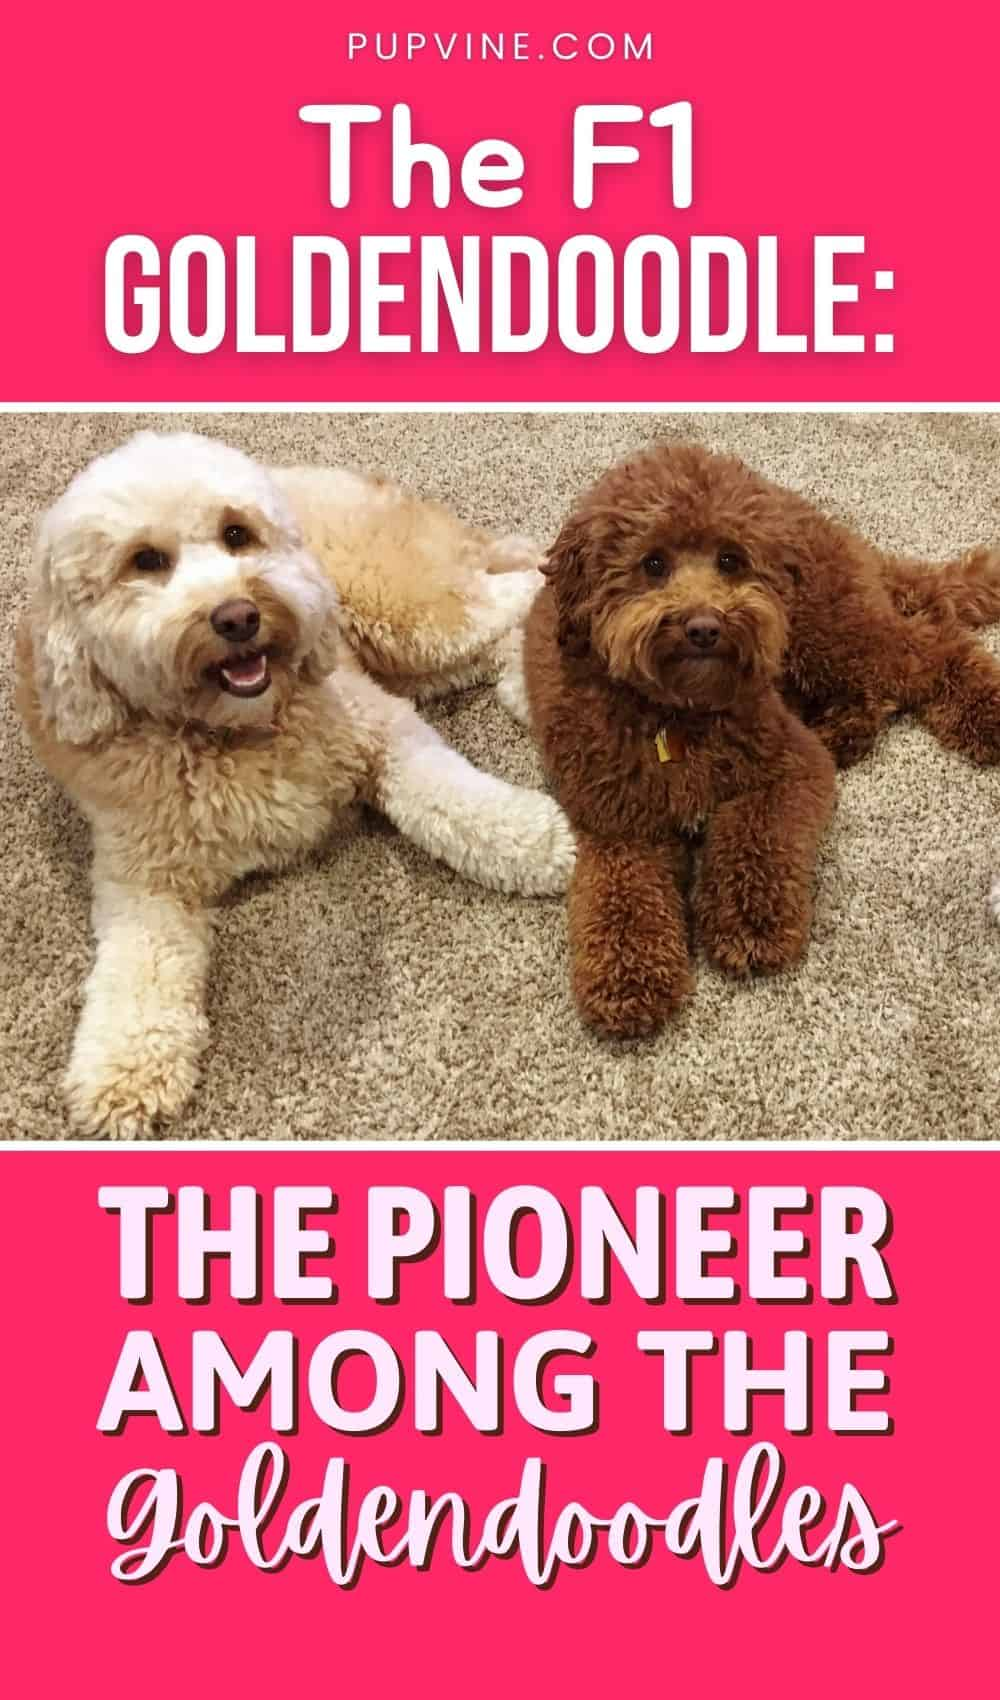 The F1 Goldendoodle The Pioneer Among The Goldendoodles